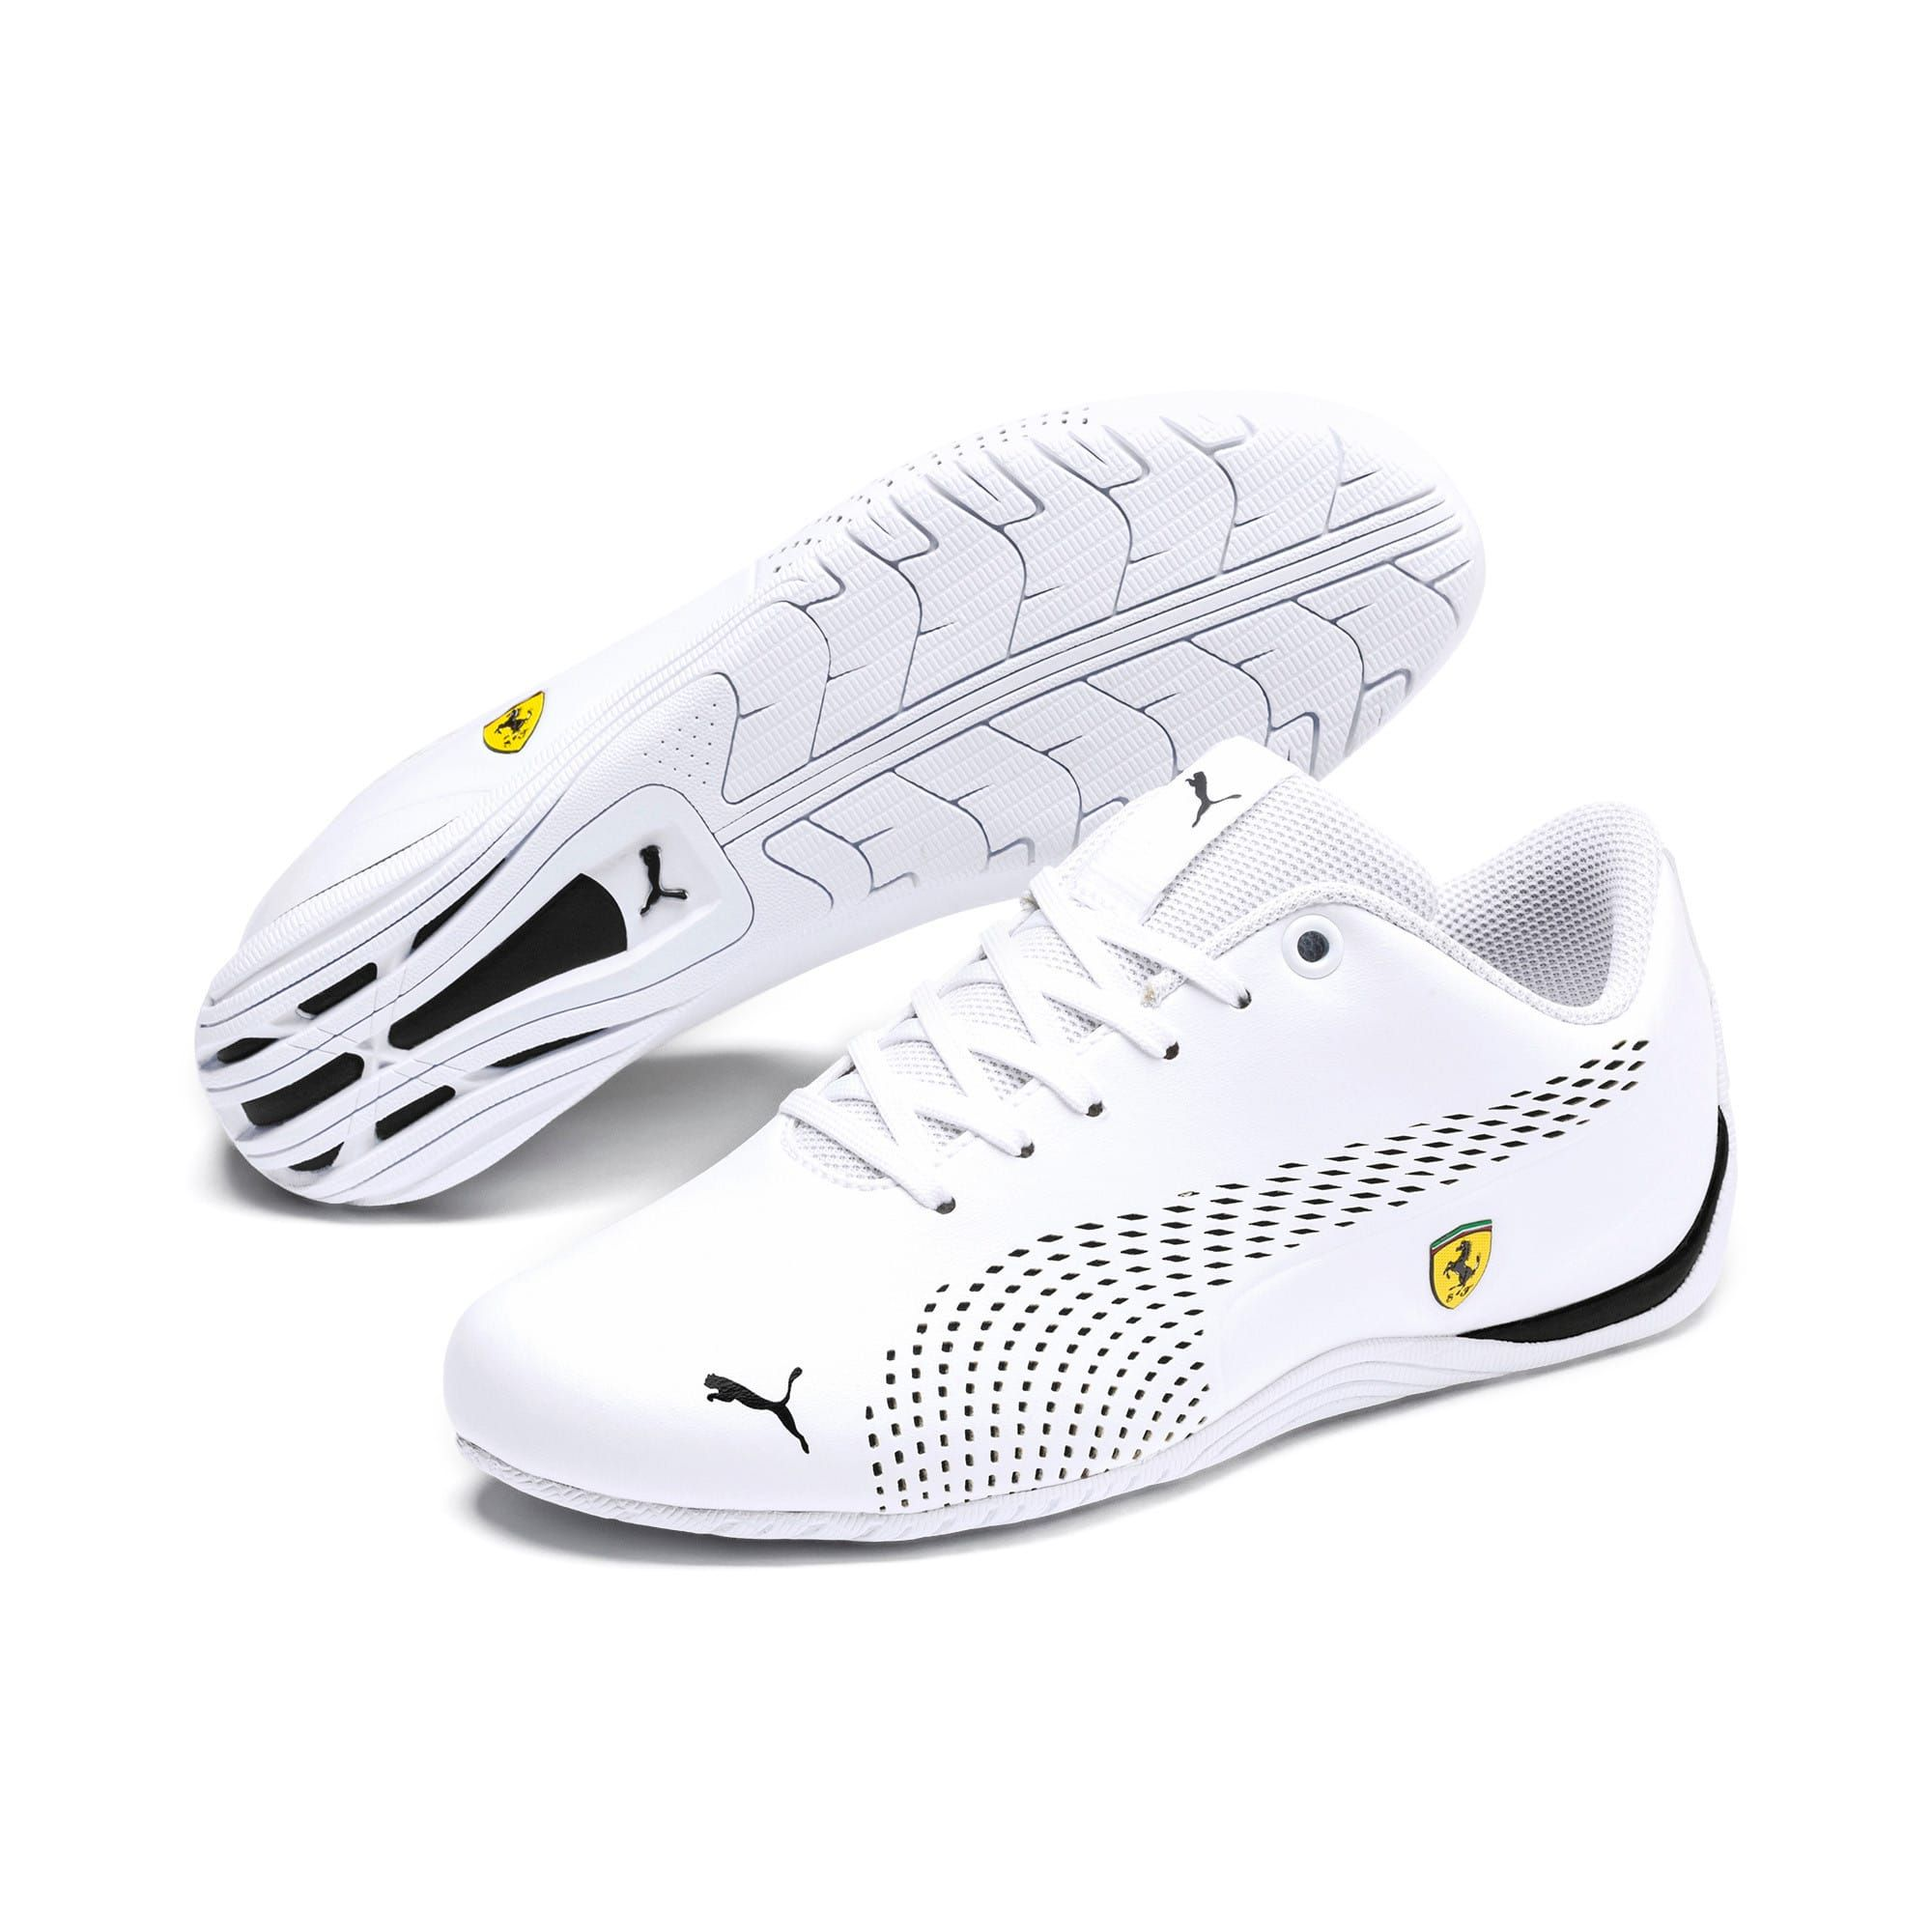 PUMA Ferrari Drift Cat 5 Ultra II Youth Trainers in White/Black size 4.5 #newferrari